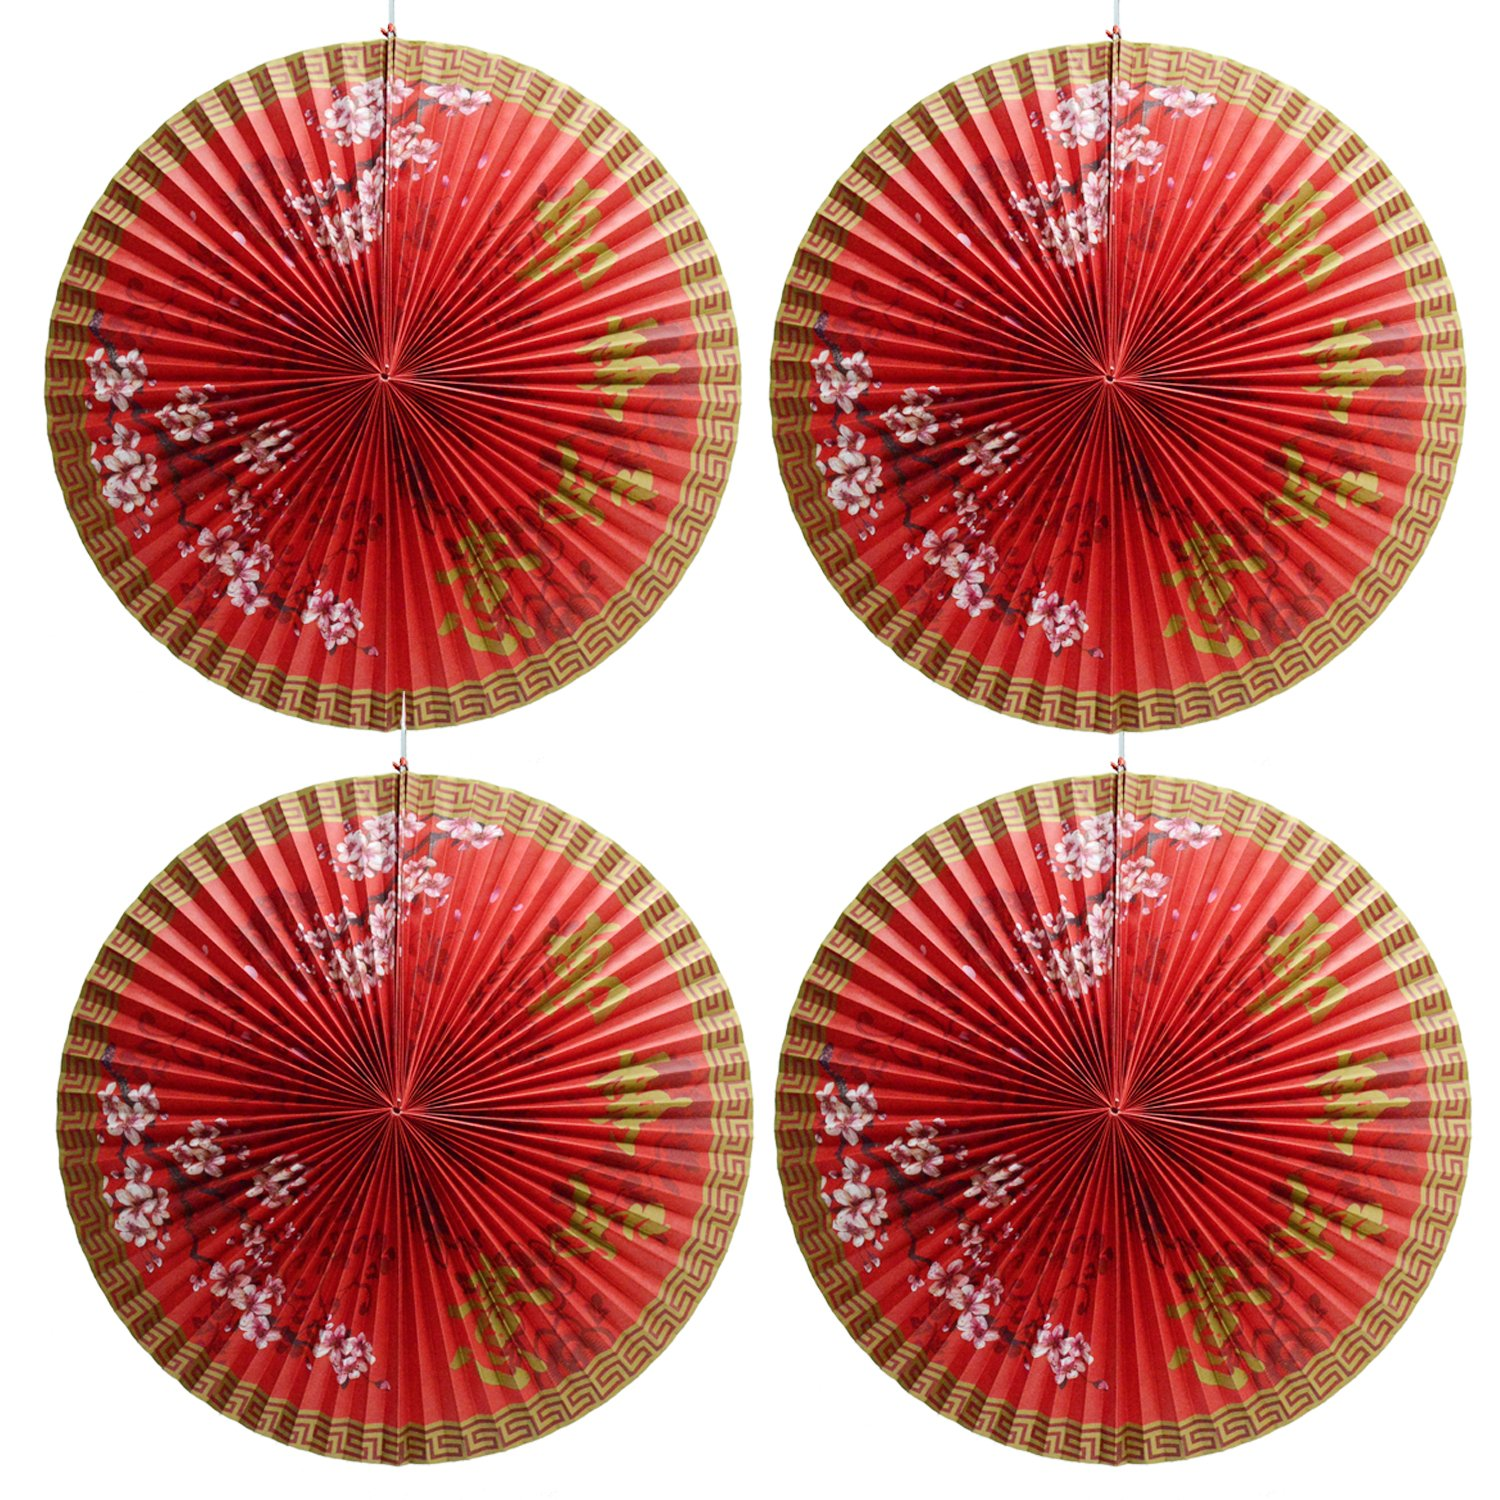 4 Paper Lanterns Decorative Unique Paper Fans Chinese Red Paper Lanterns Hanging Decortions for Mid-Autumn Festival, New Year Chinese Spring Festival, Wedding Parties Decorations, Event and Home Decor